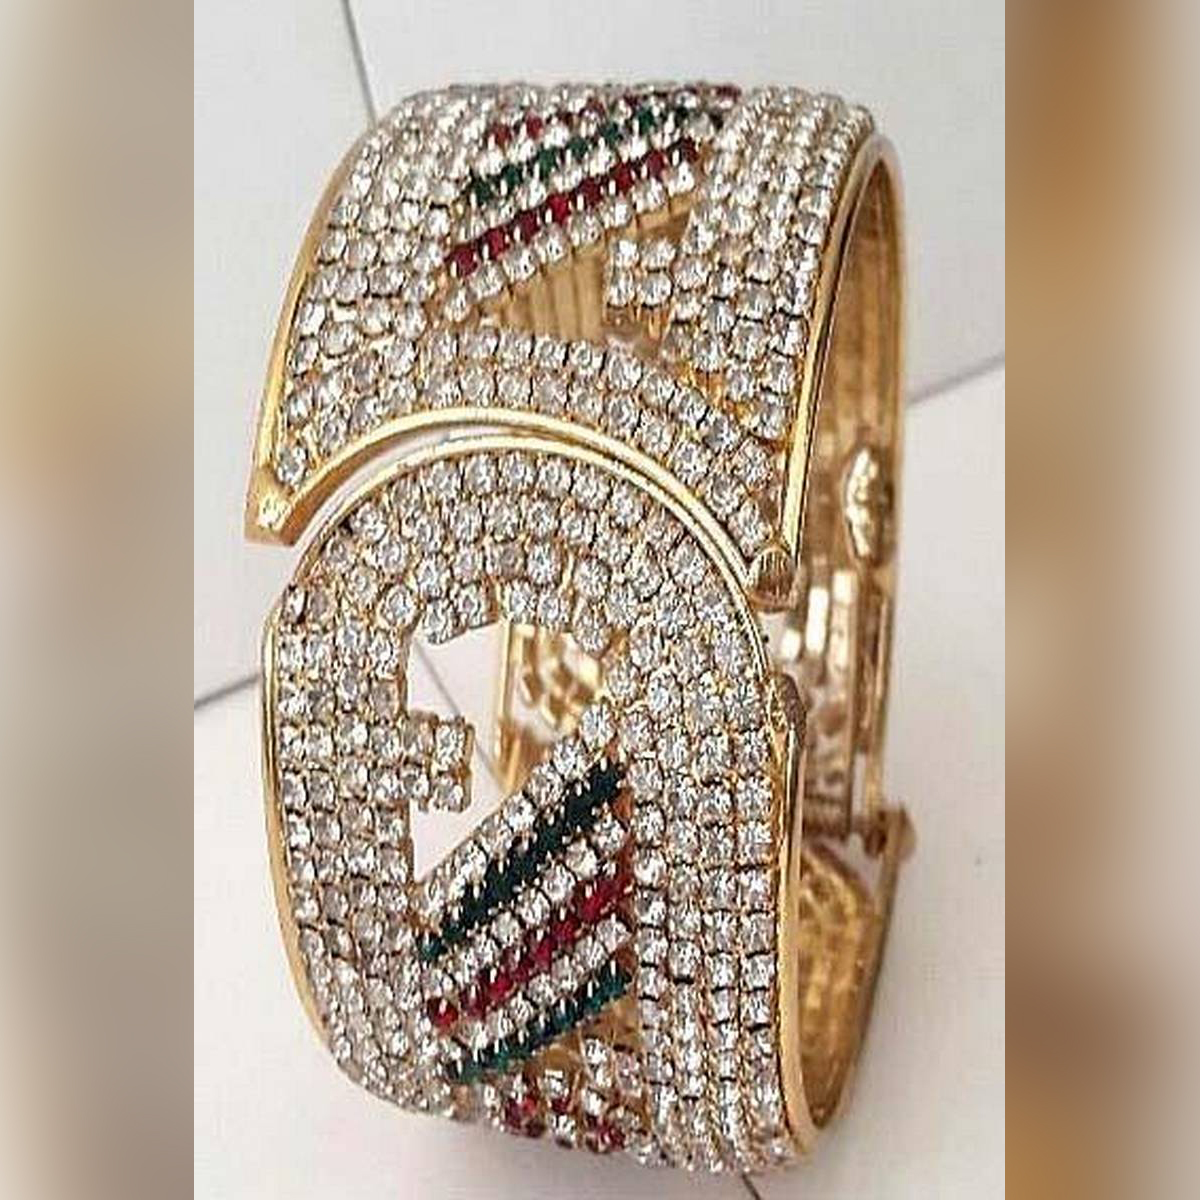 1 K Gold Plated Stone Bangles For Women (ADJUSTABLE SIZE)